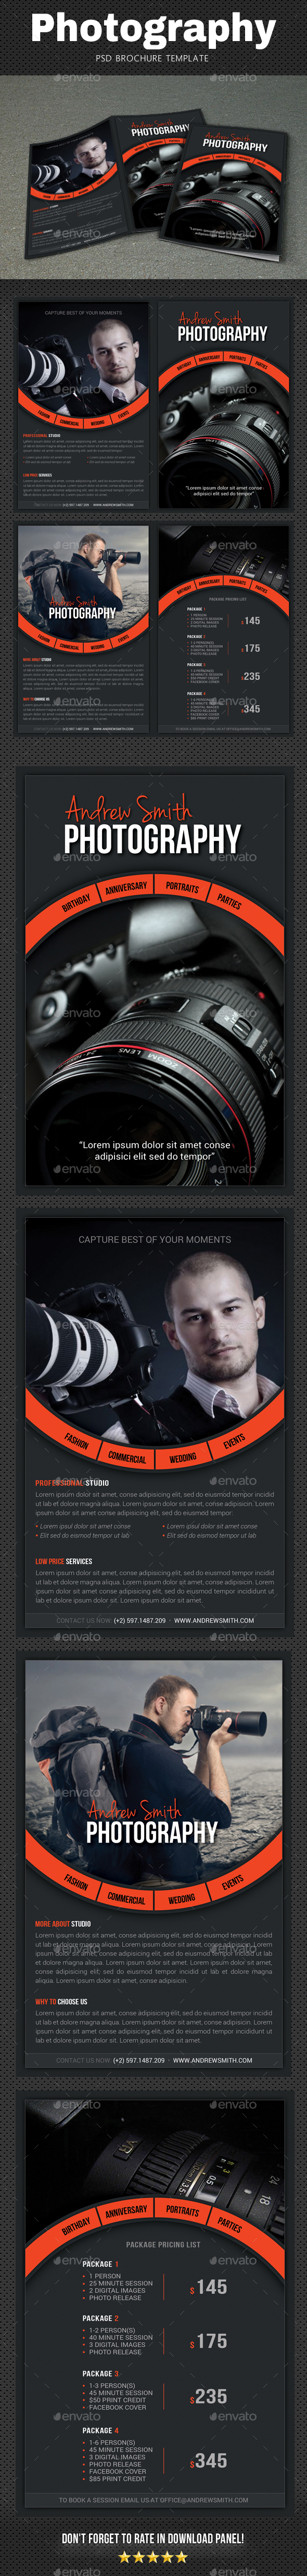 GraphicRiver Photography Brochure 3 20821523